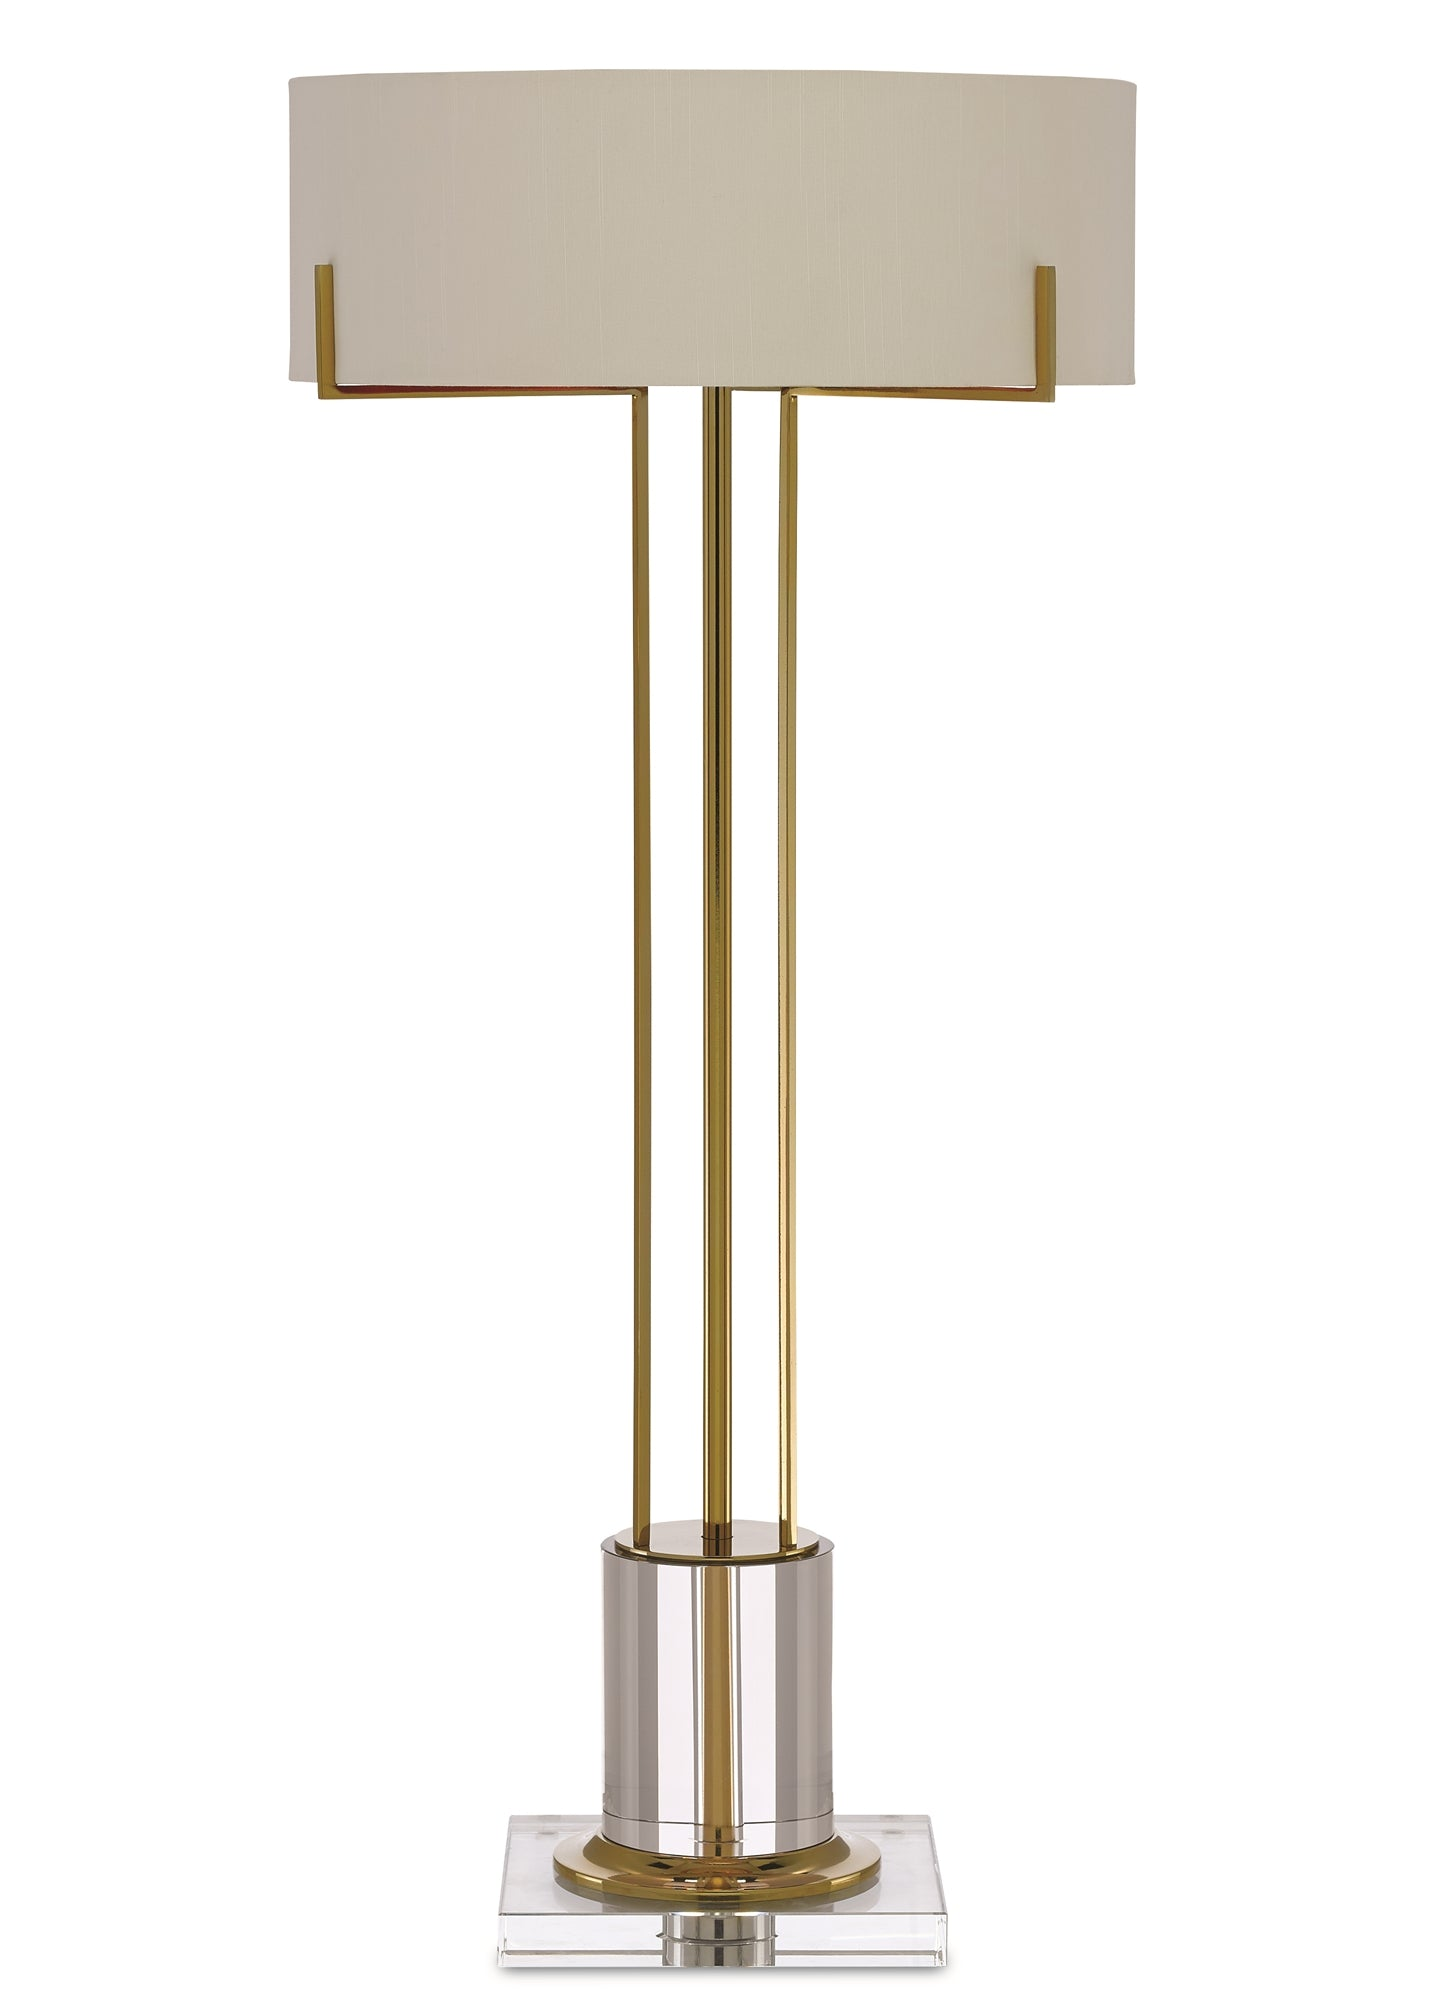 Currey and Company Winsland Brass Table Lamp 6000-0355